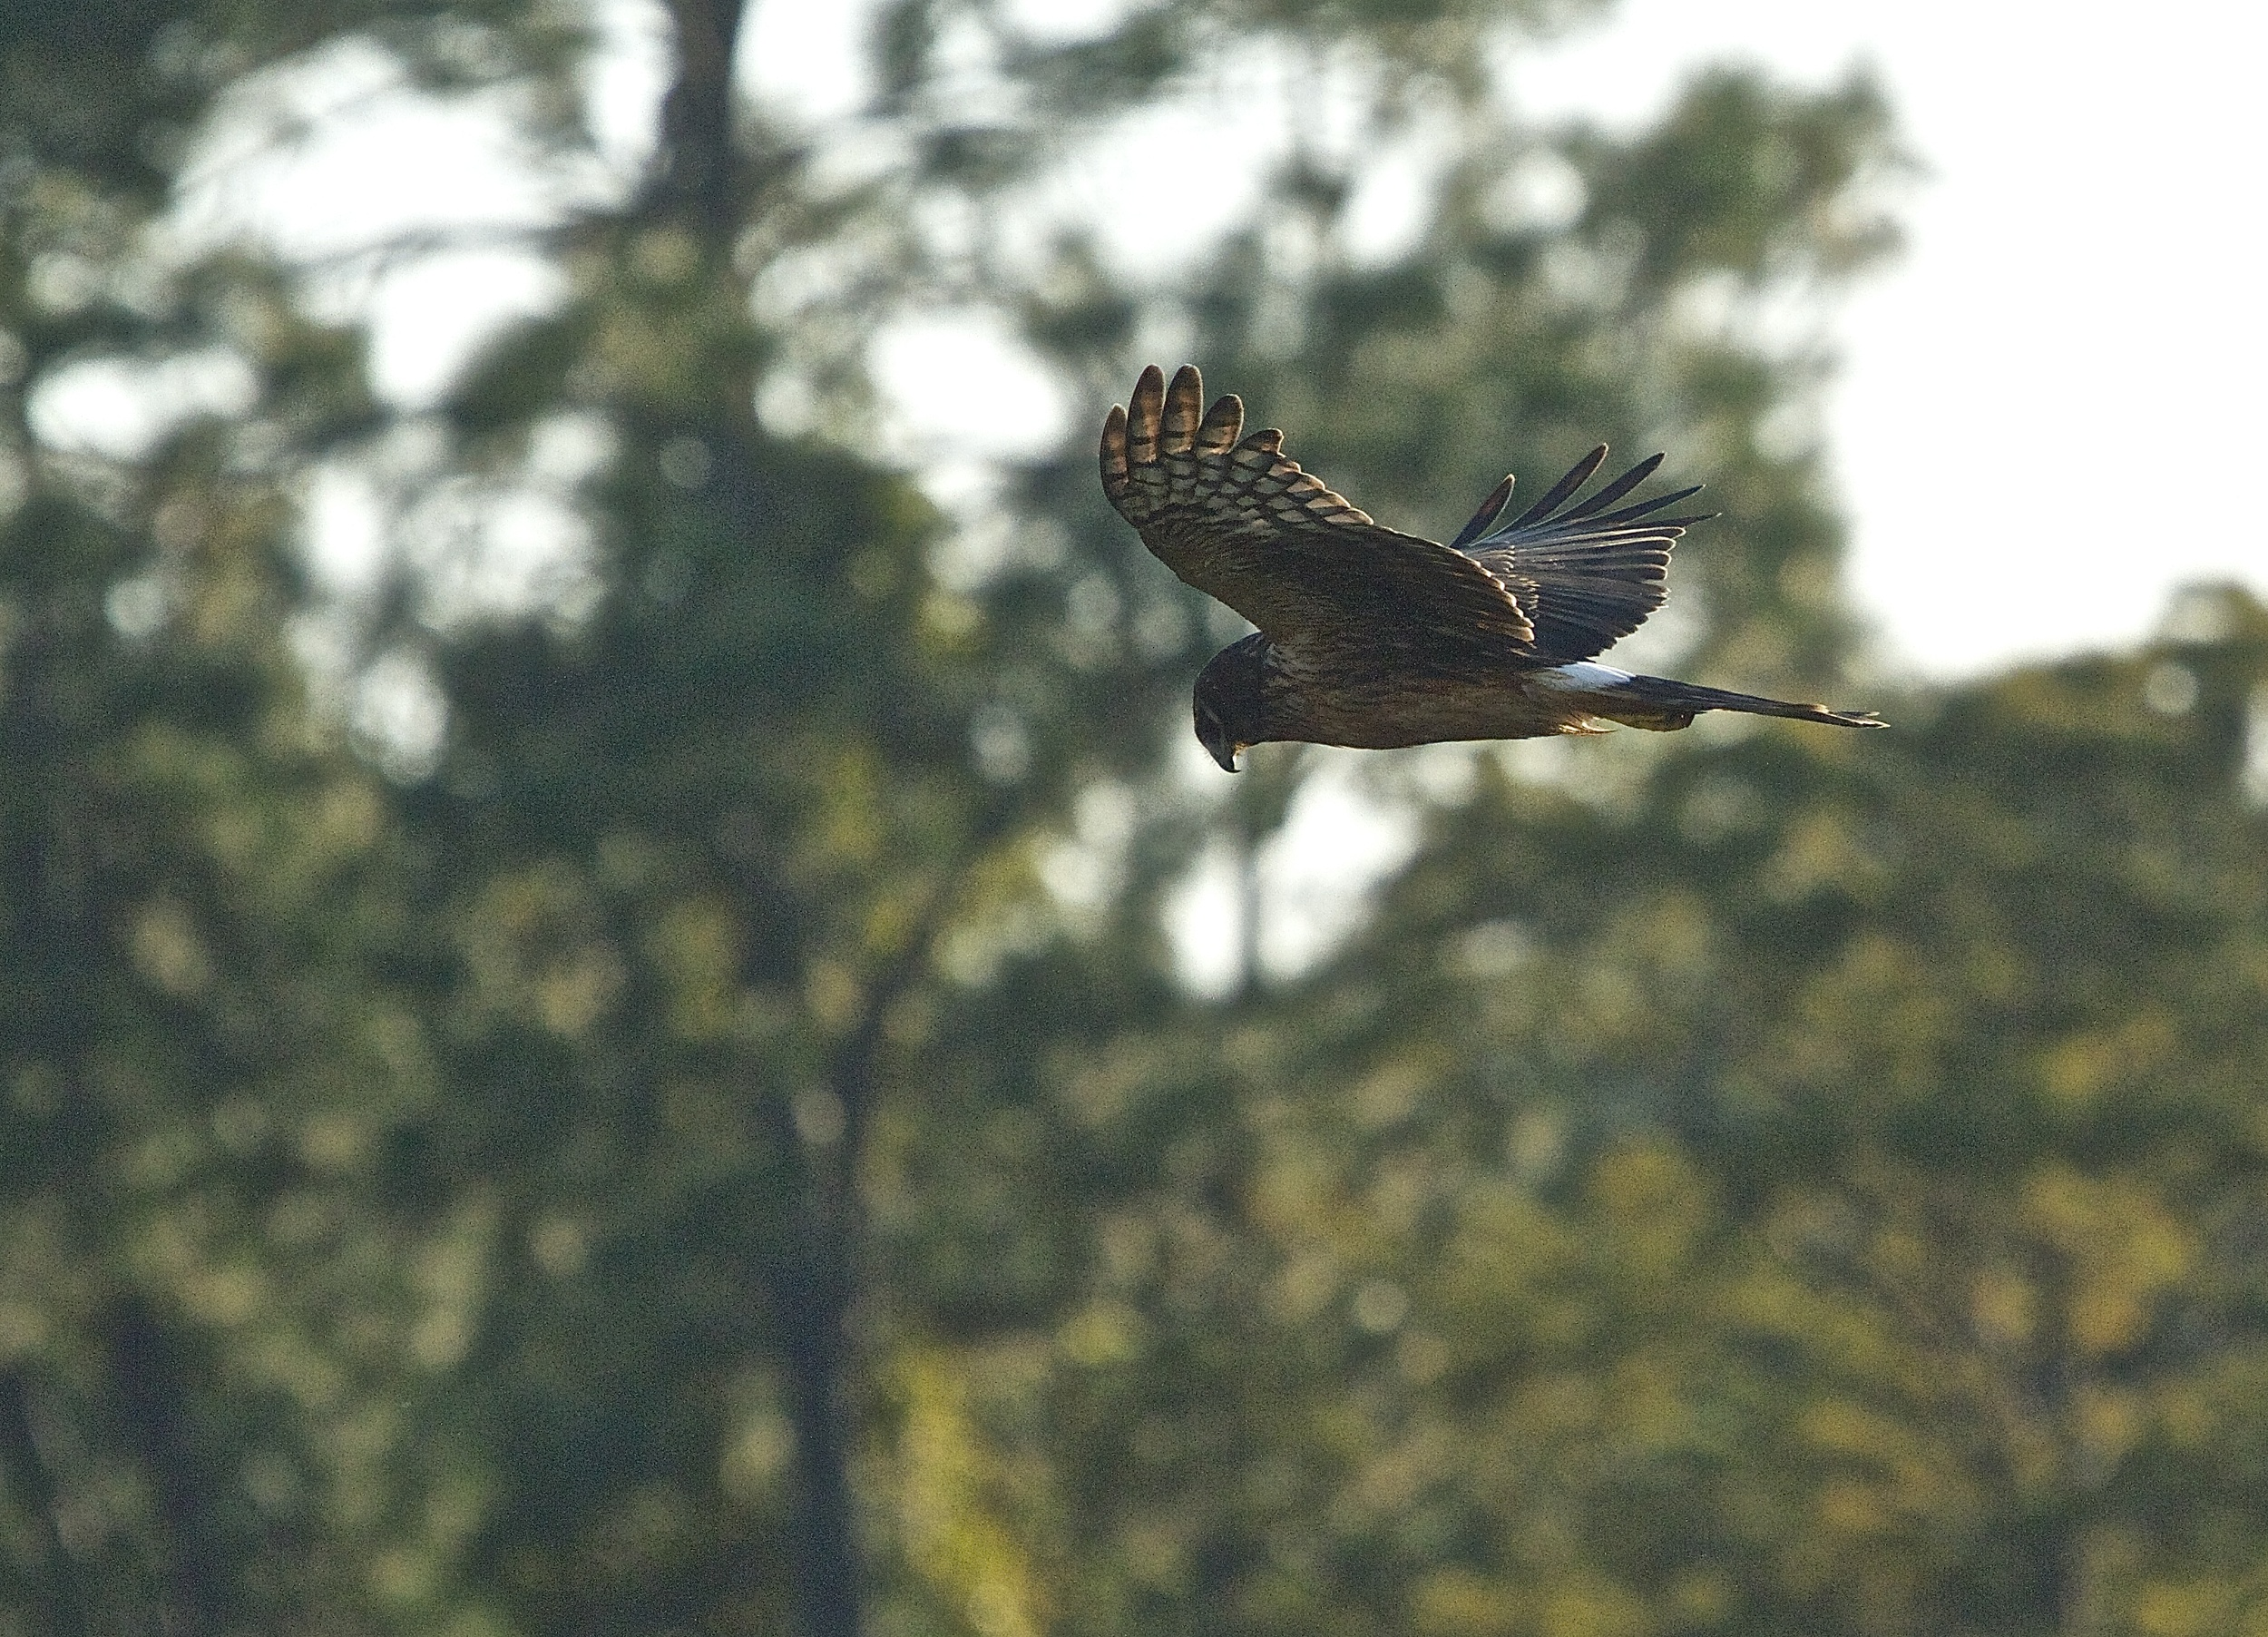 A Northern Harrier flies over the marsh looking for prey.